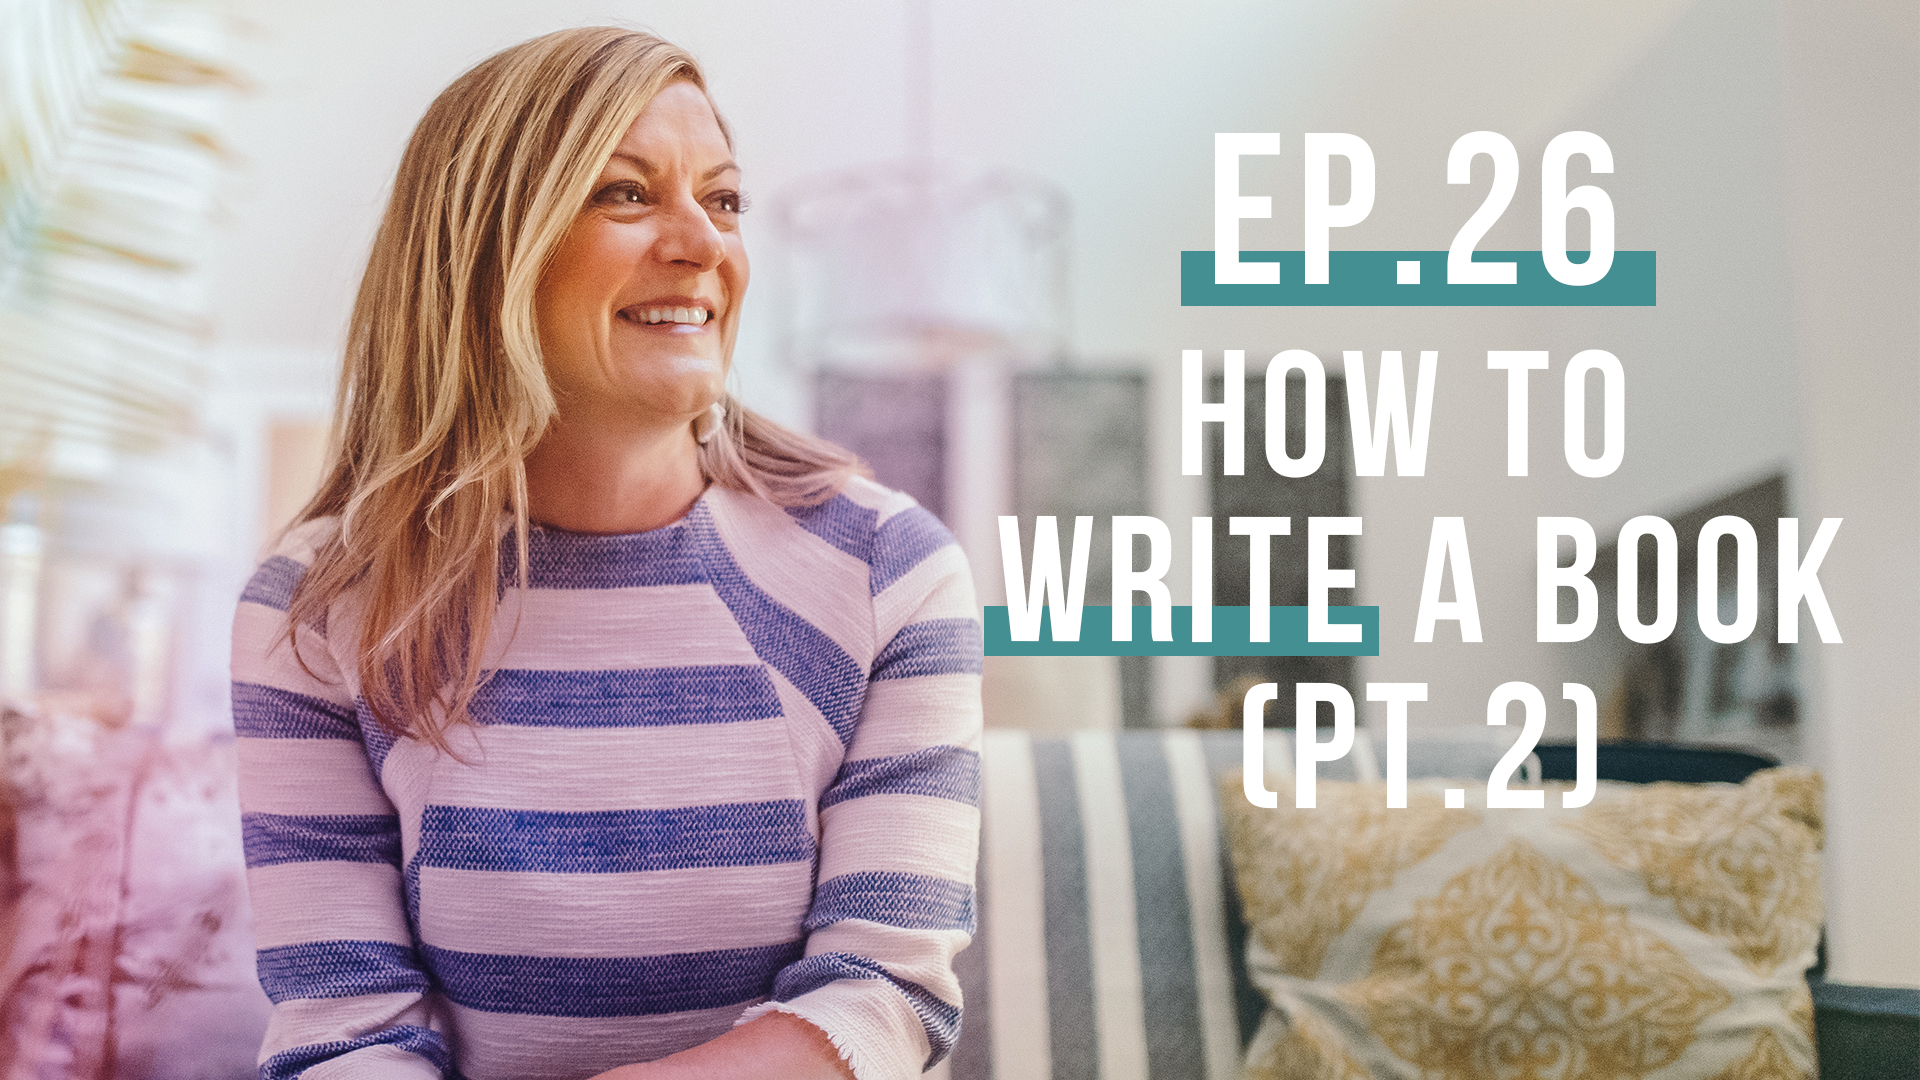 How To Write A Book Pt.2 (WERK Series) | Let's Be Real Podcast Ep. 26